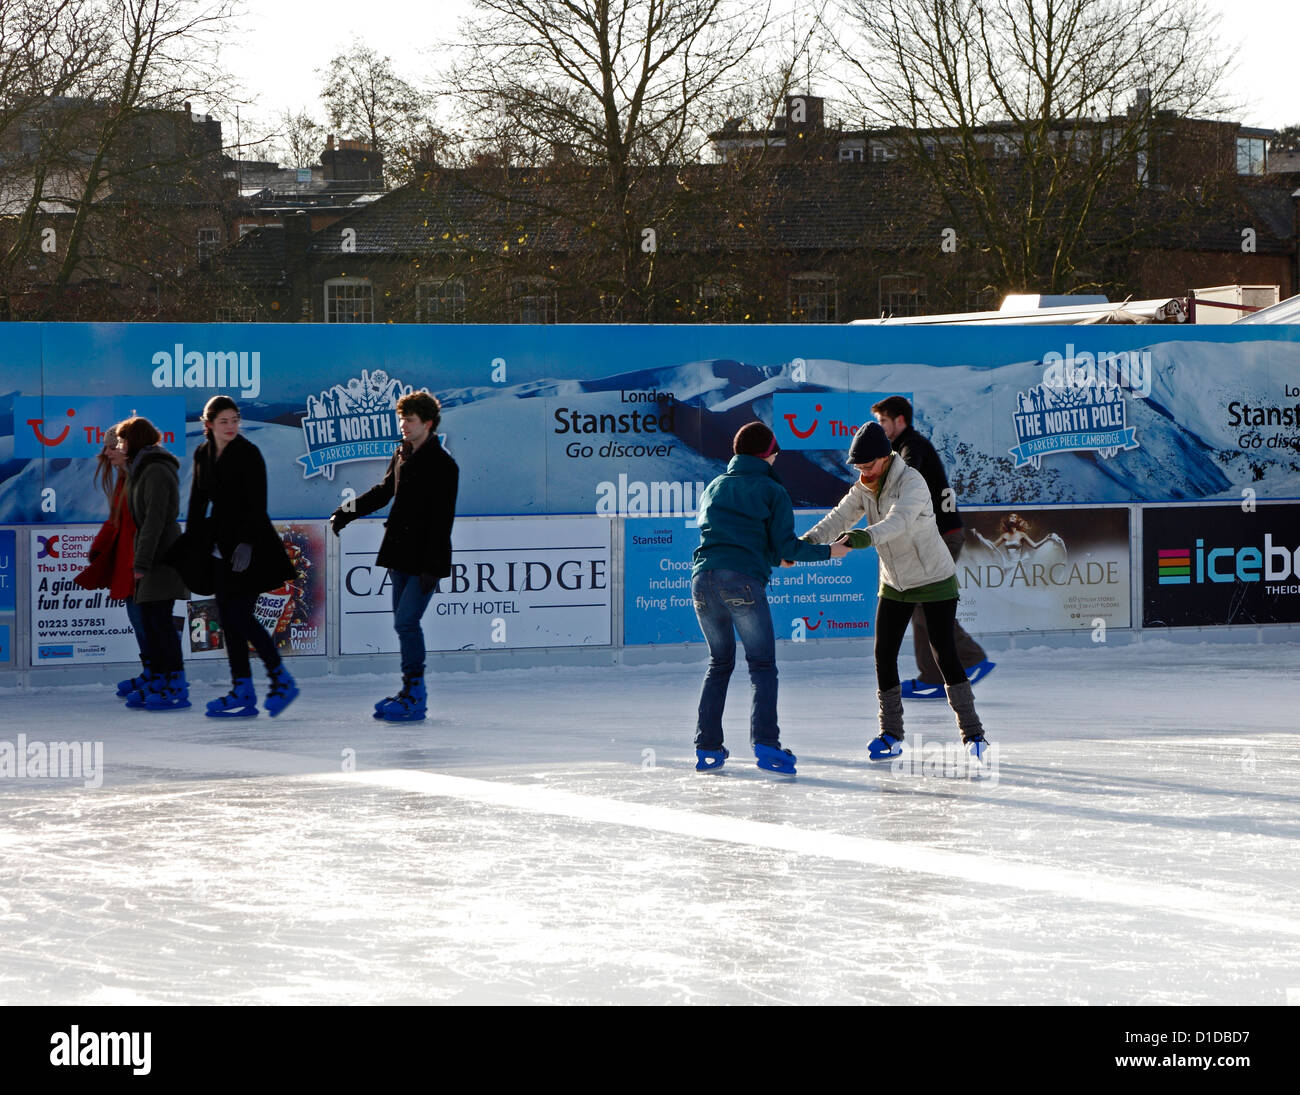 Learning to ice skate on temporary mobile ice rink on Parkers Piece Cambridge England - Stock Image